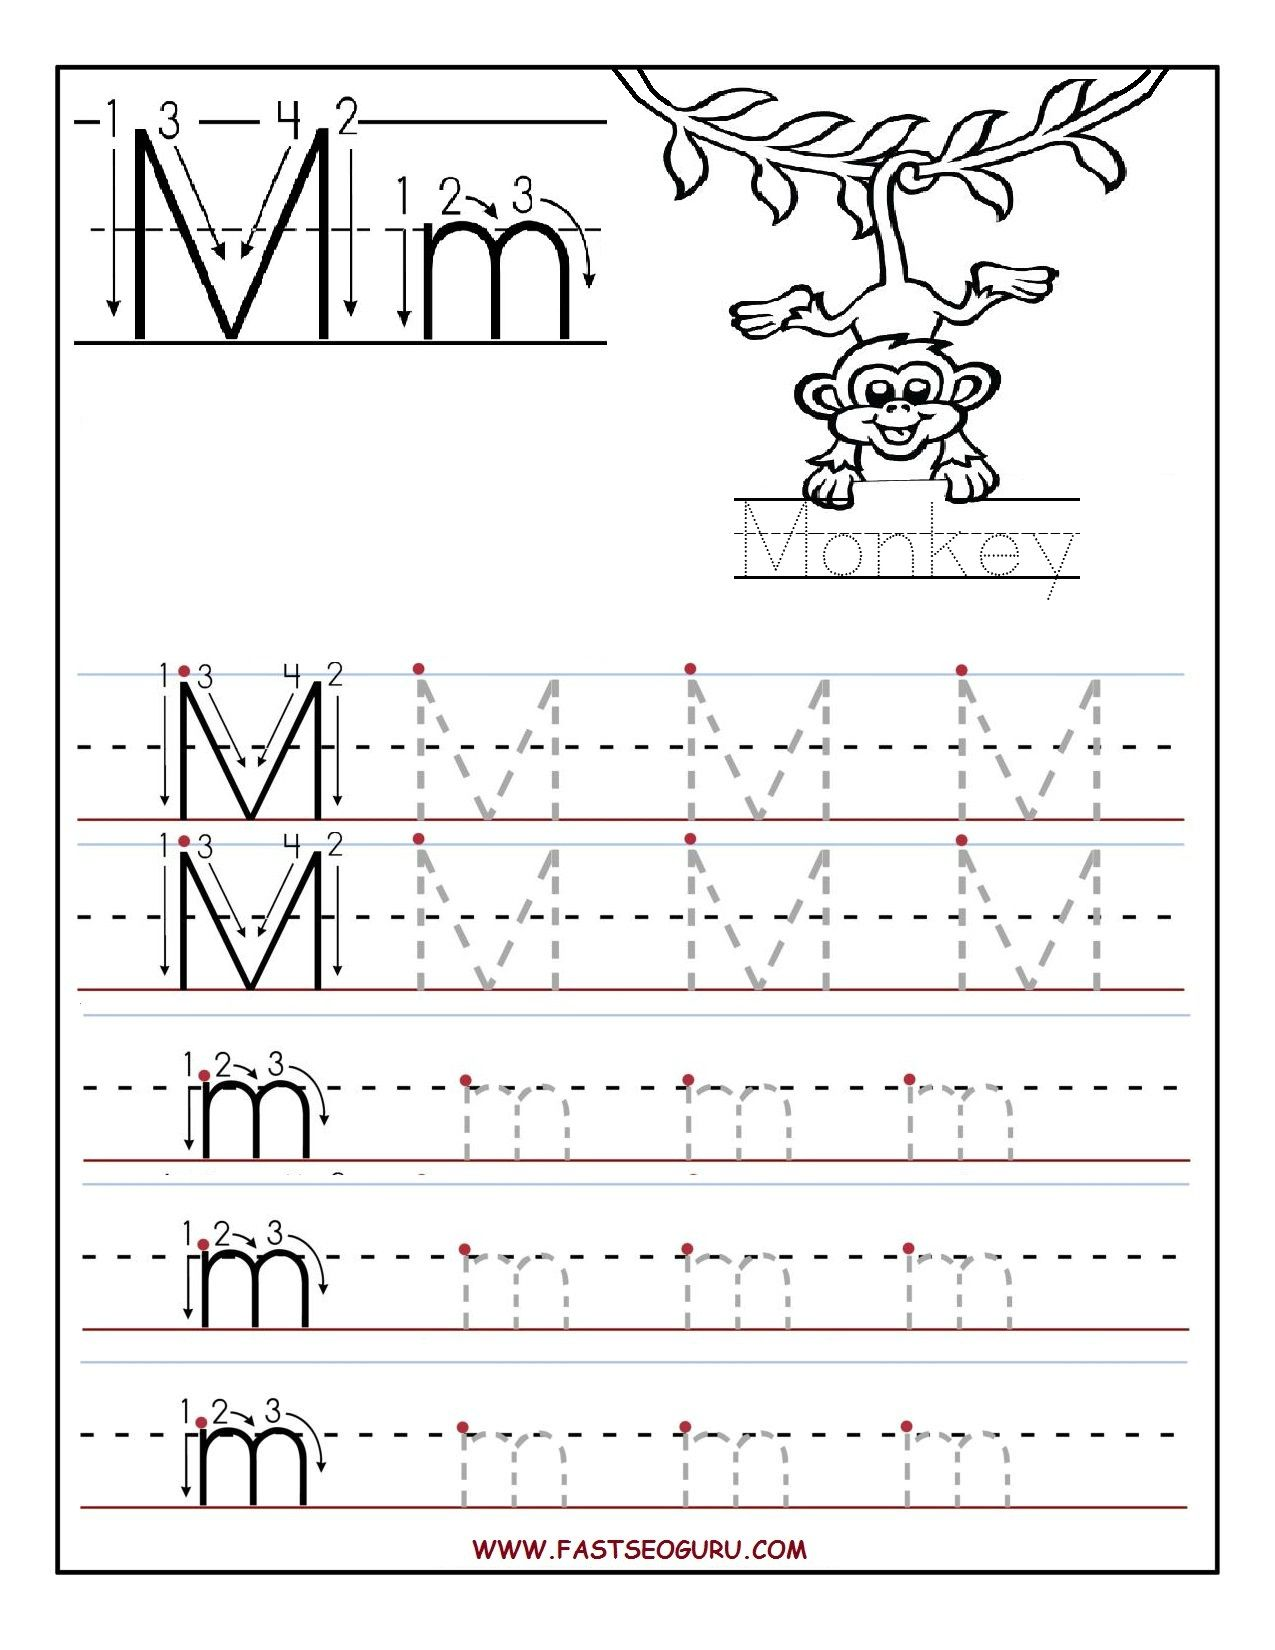 Printable Letter M Tracing Worksheets For Preschool